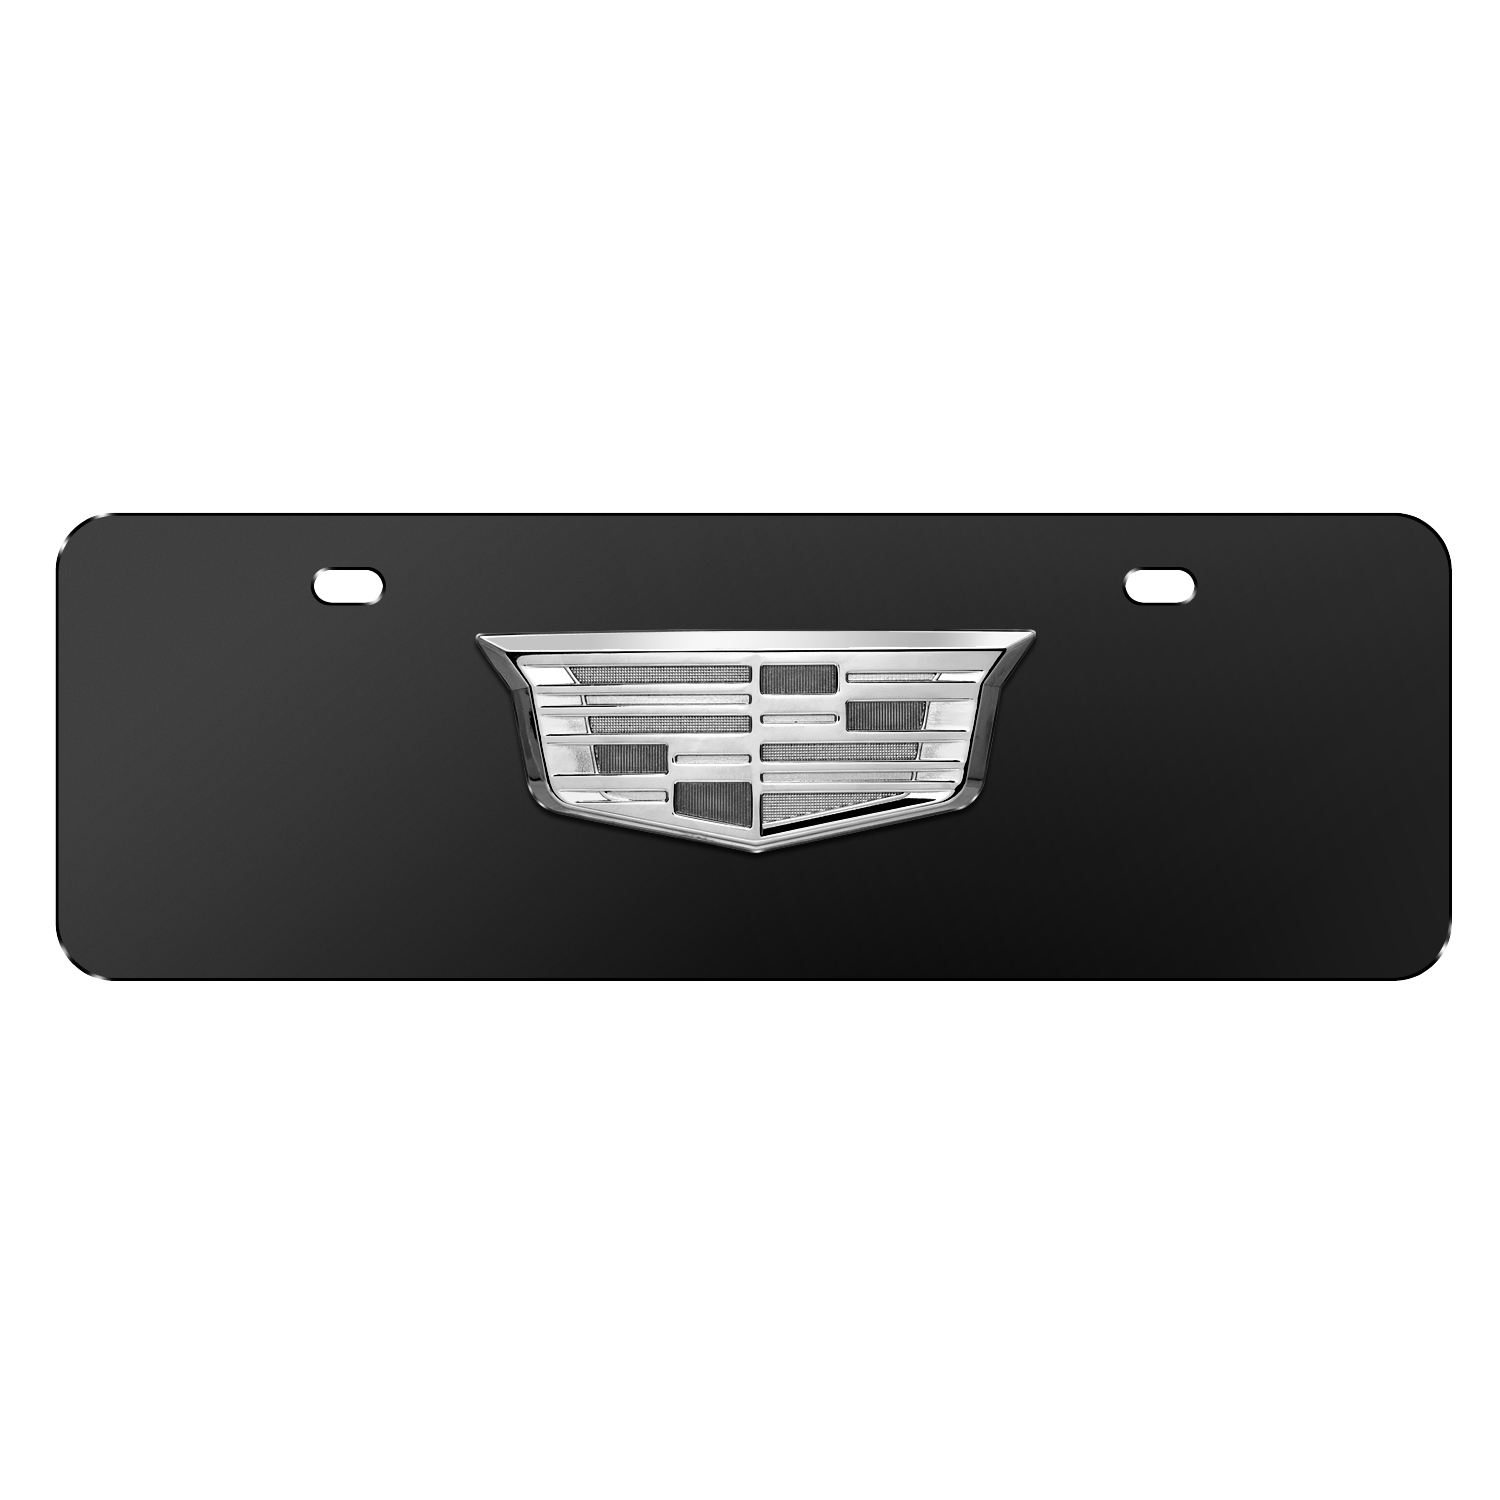 """Cadillac 3D Crest Chrome Metal Logo Black 12""""x4"""" Half-Size Stainless Steel License Plate"""